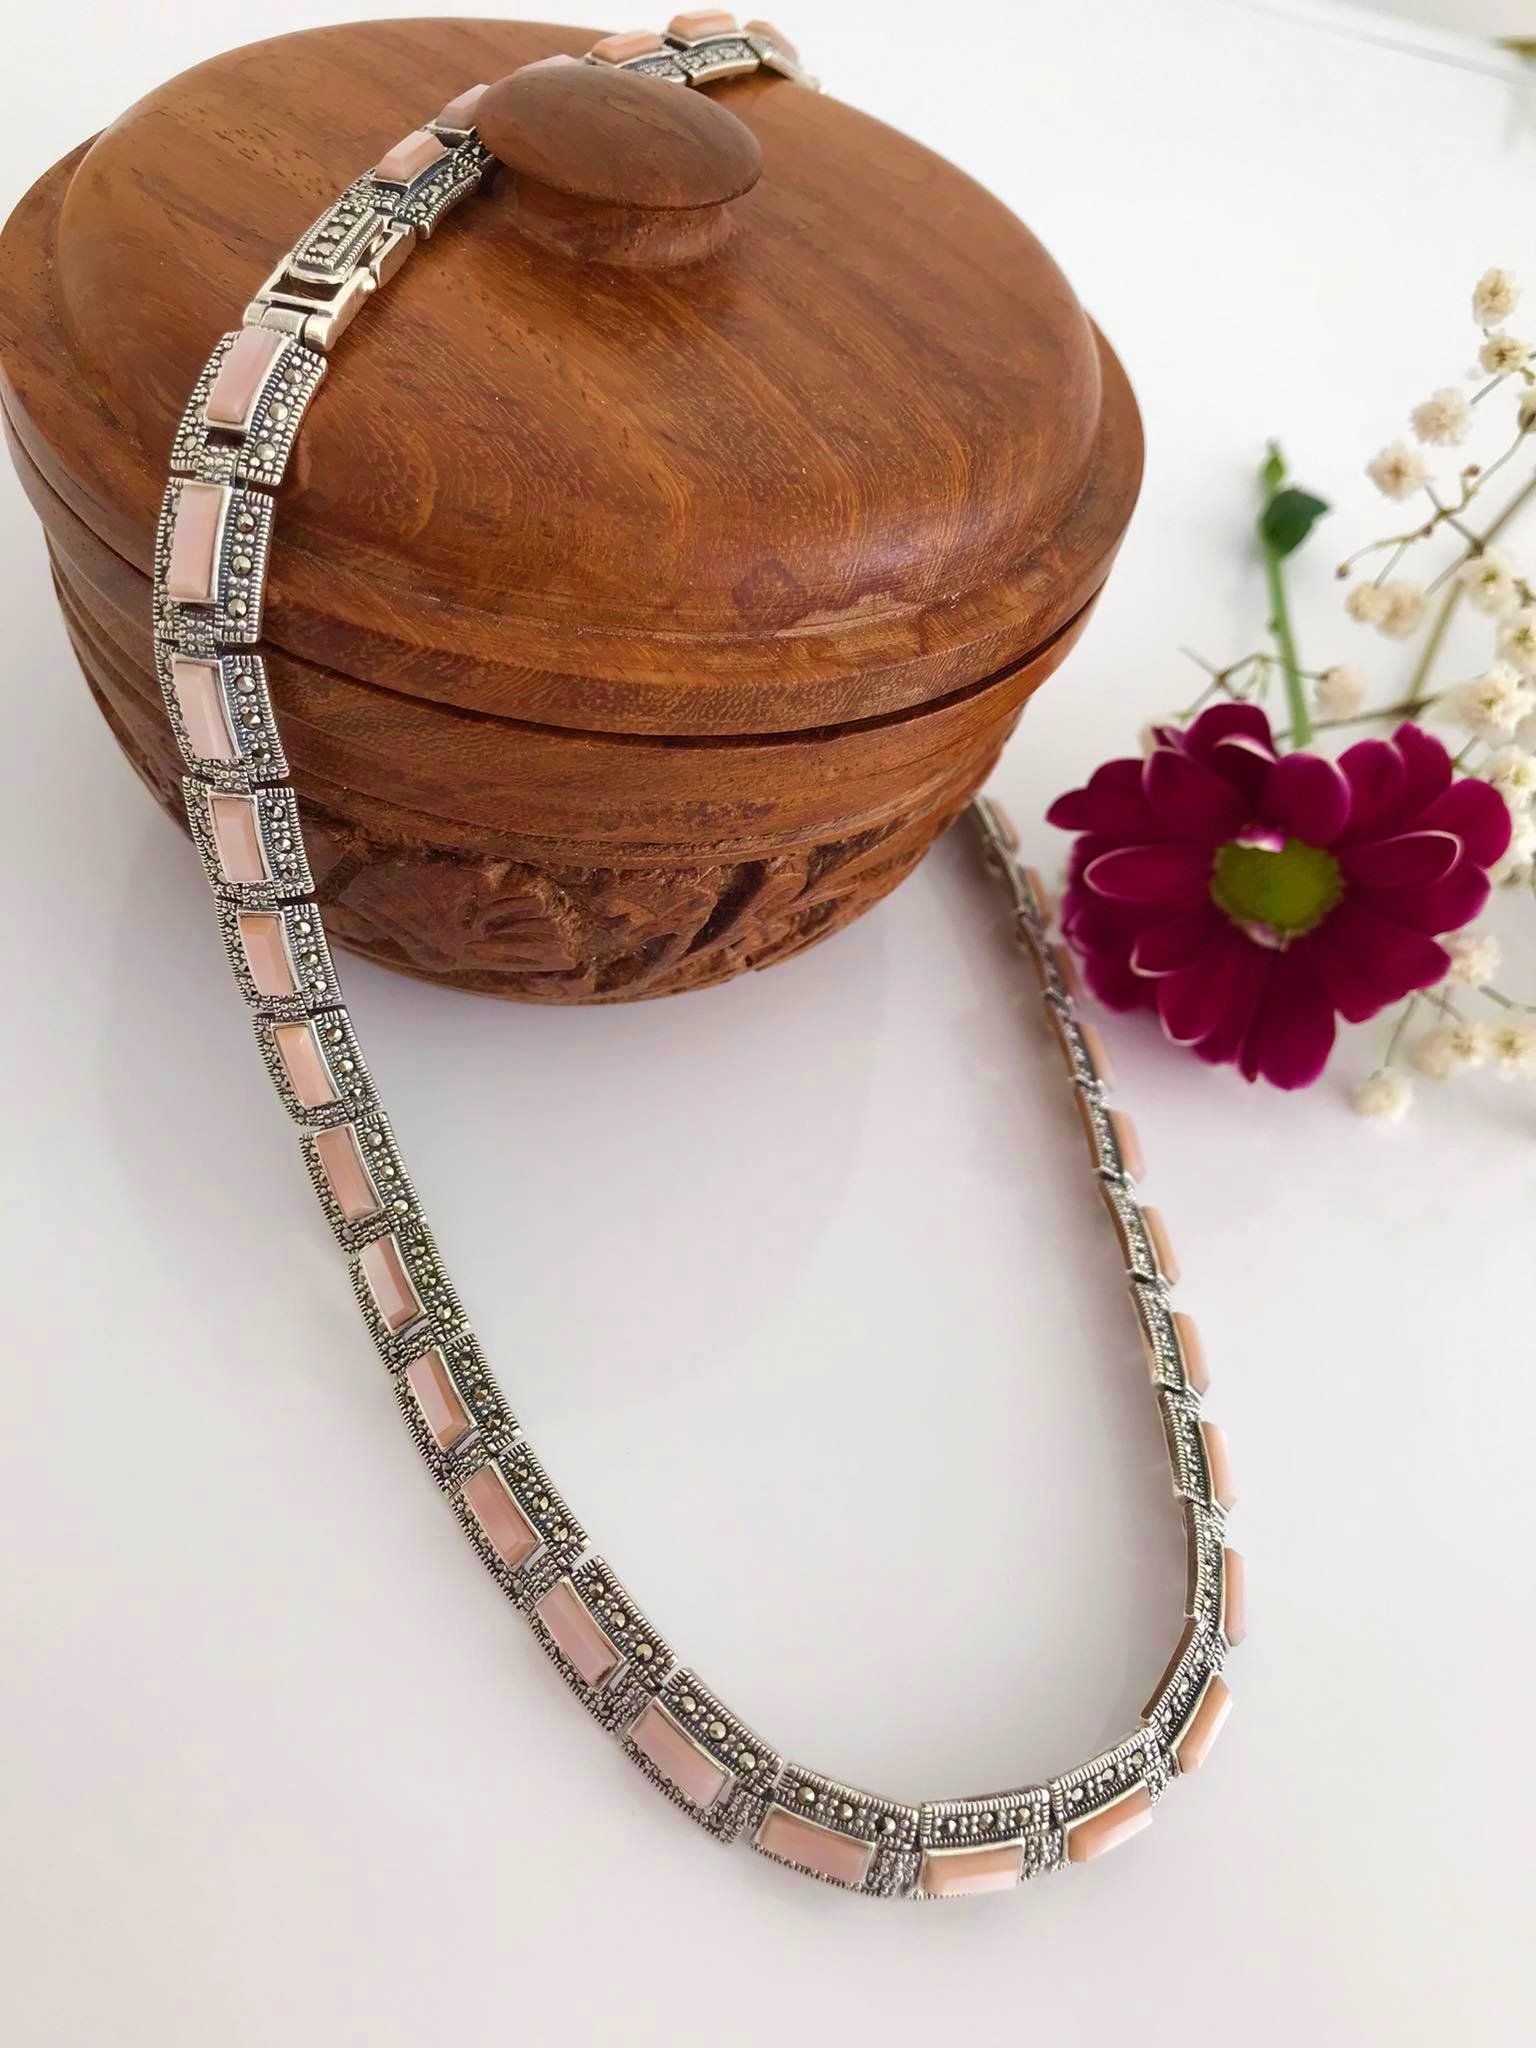 Pink Mother of Pearl with Marcasite Necklace Image